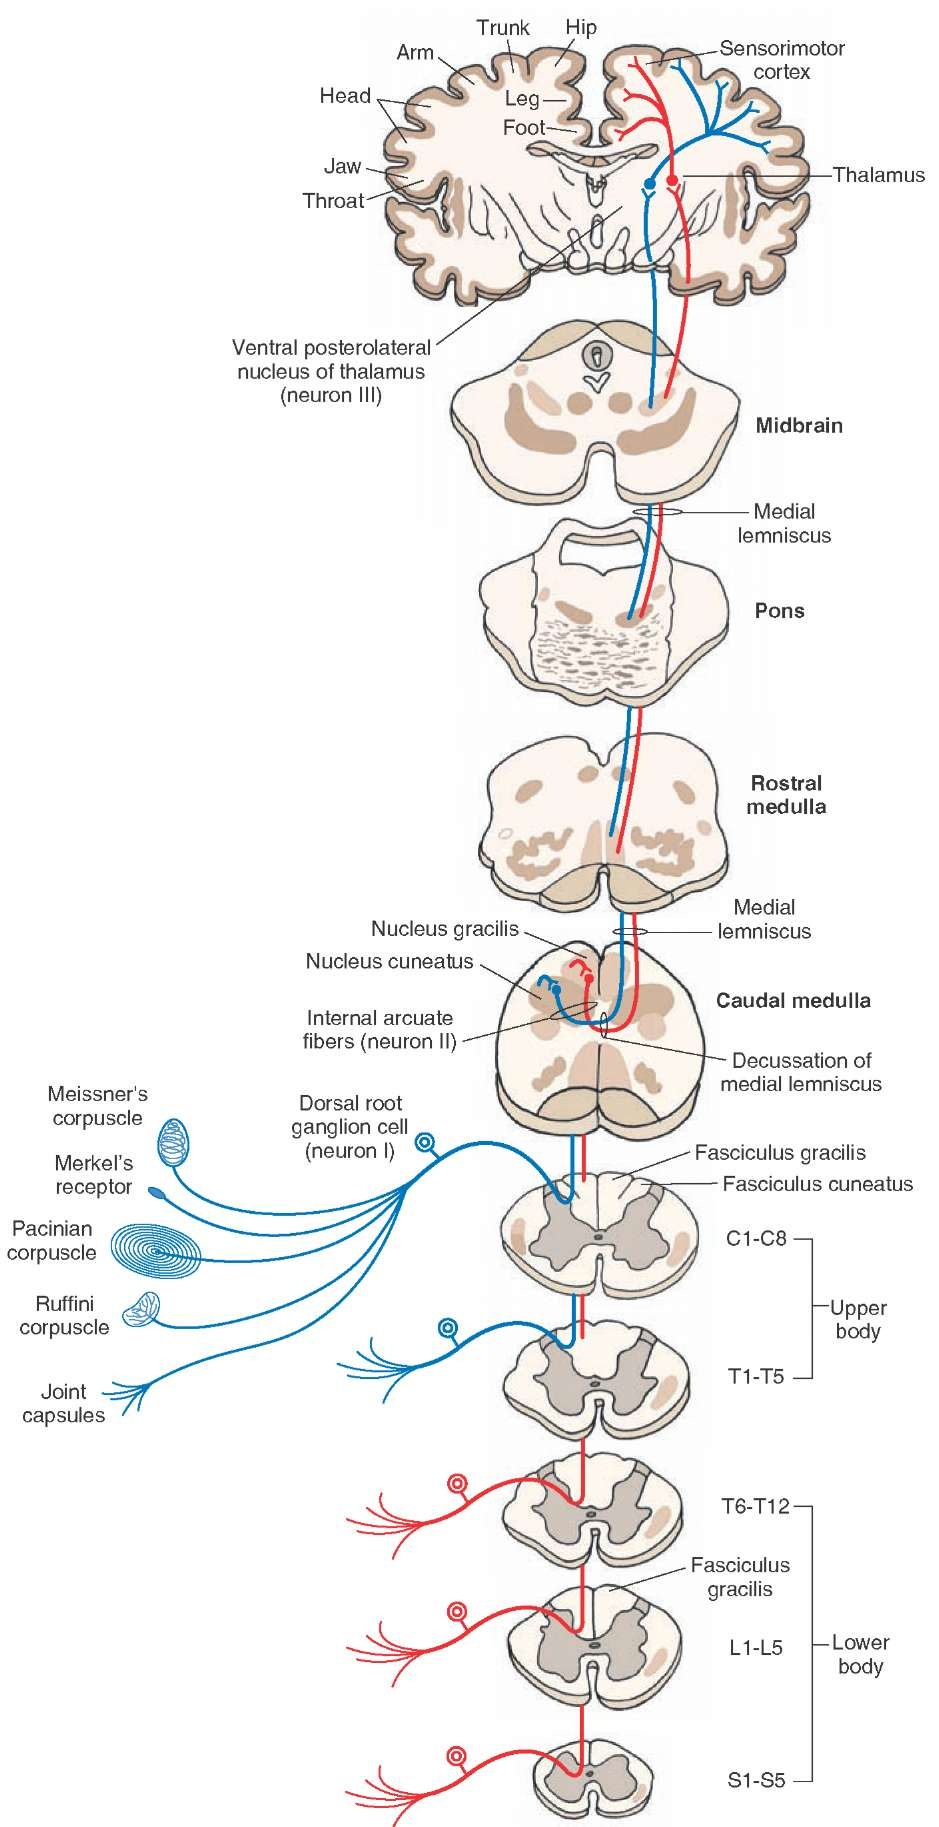 diagram showing the course of fibers in the dorsal column  the fasciculus  gracilis exists at